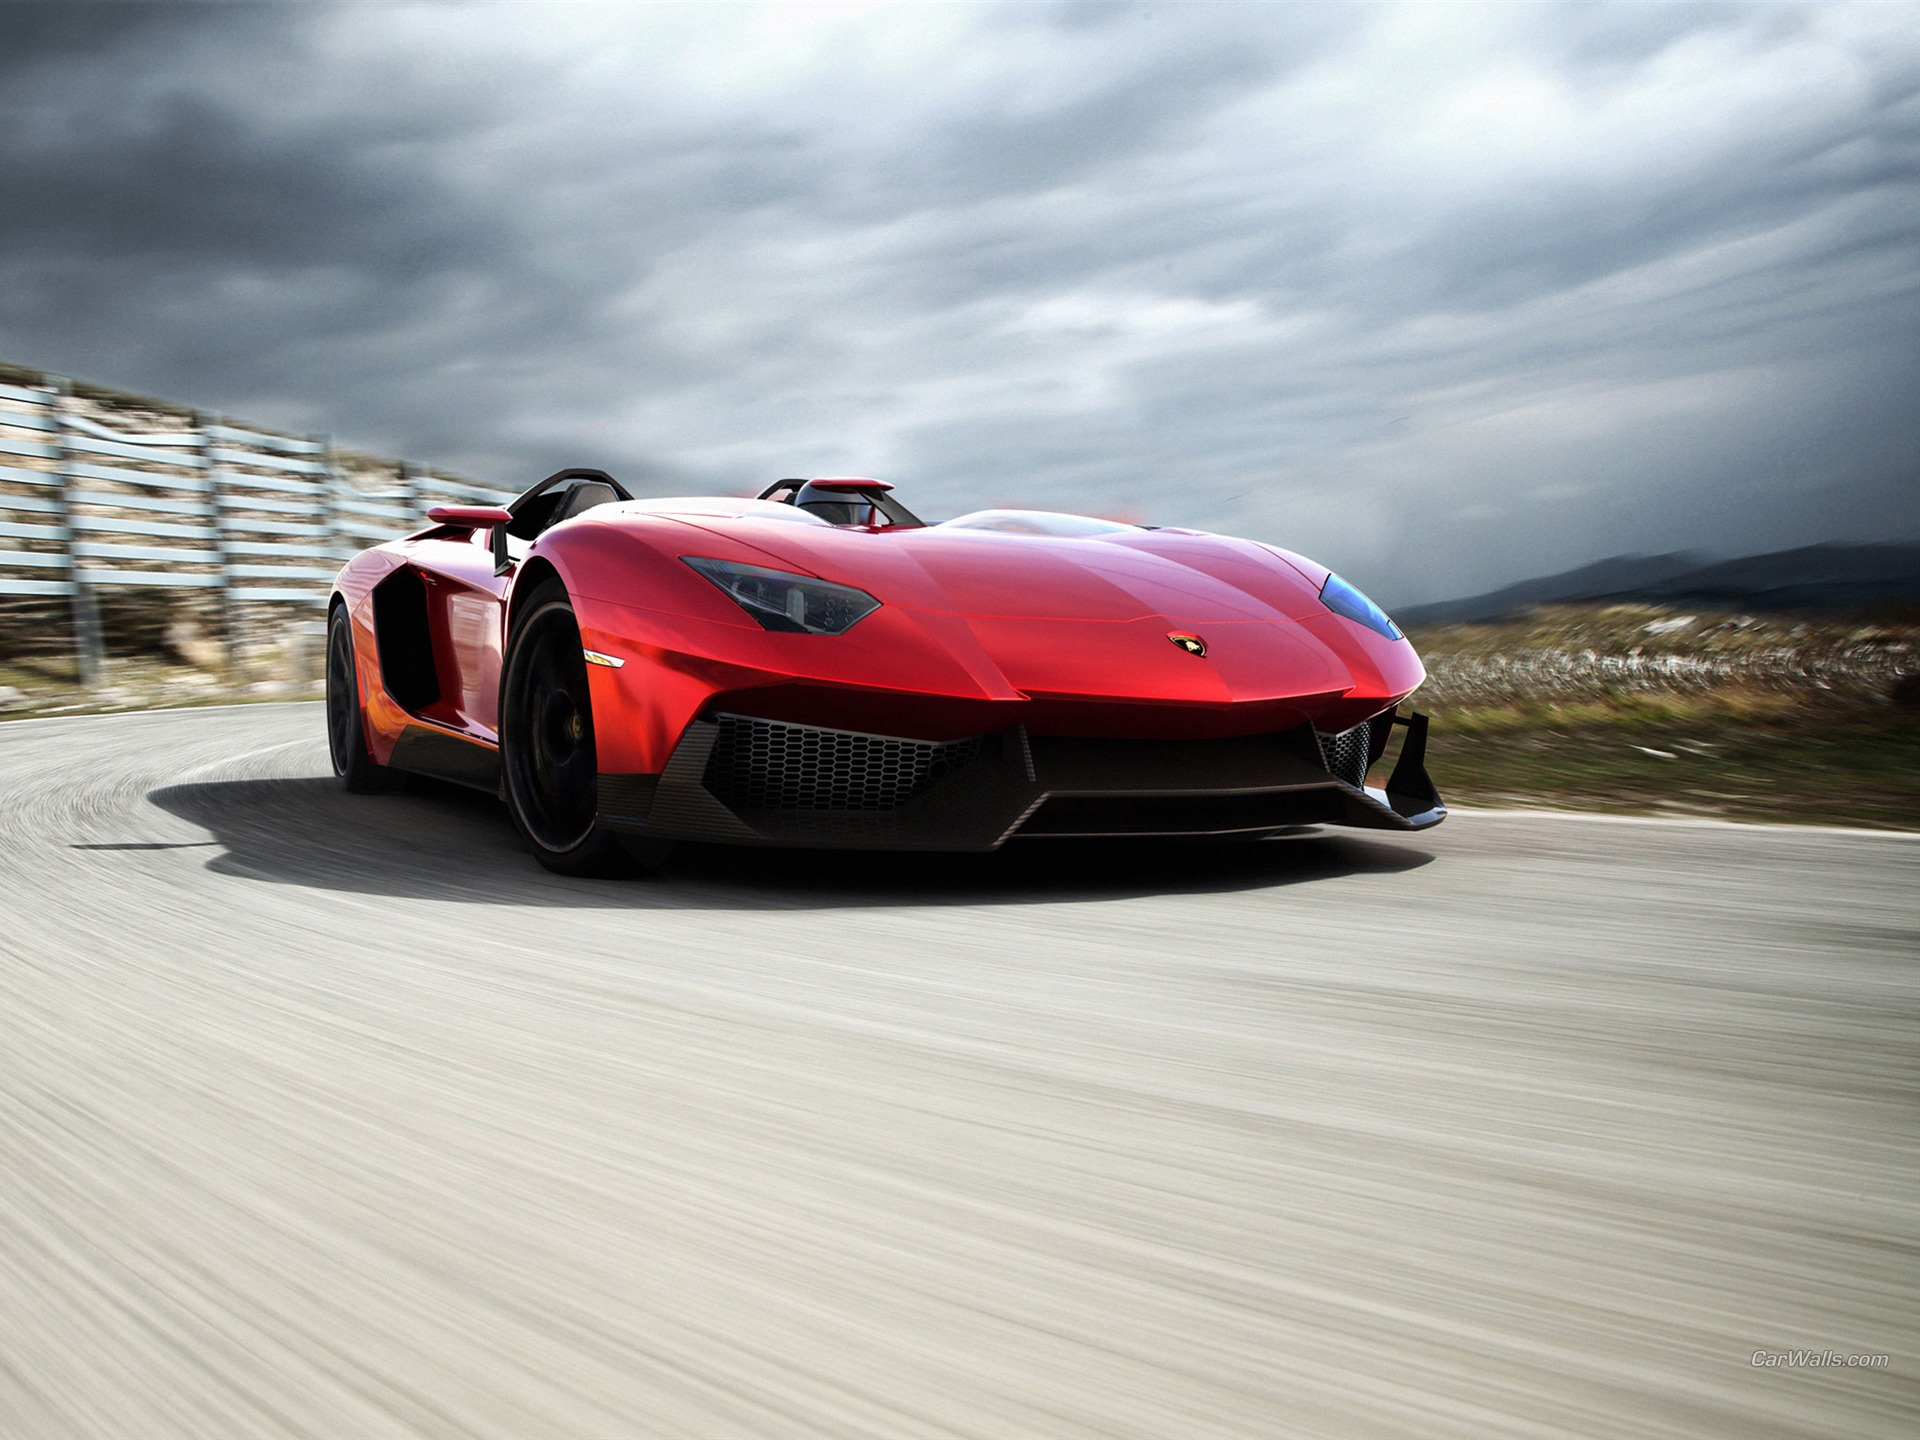 Lamborghini aventador wallpaper 1920x1080 hd